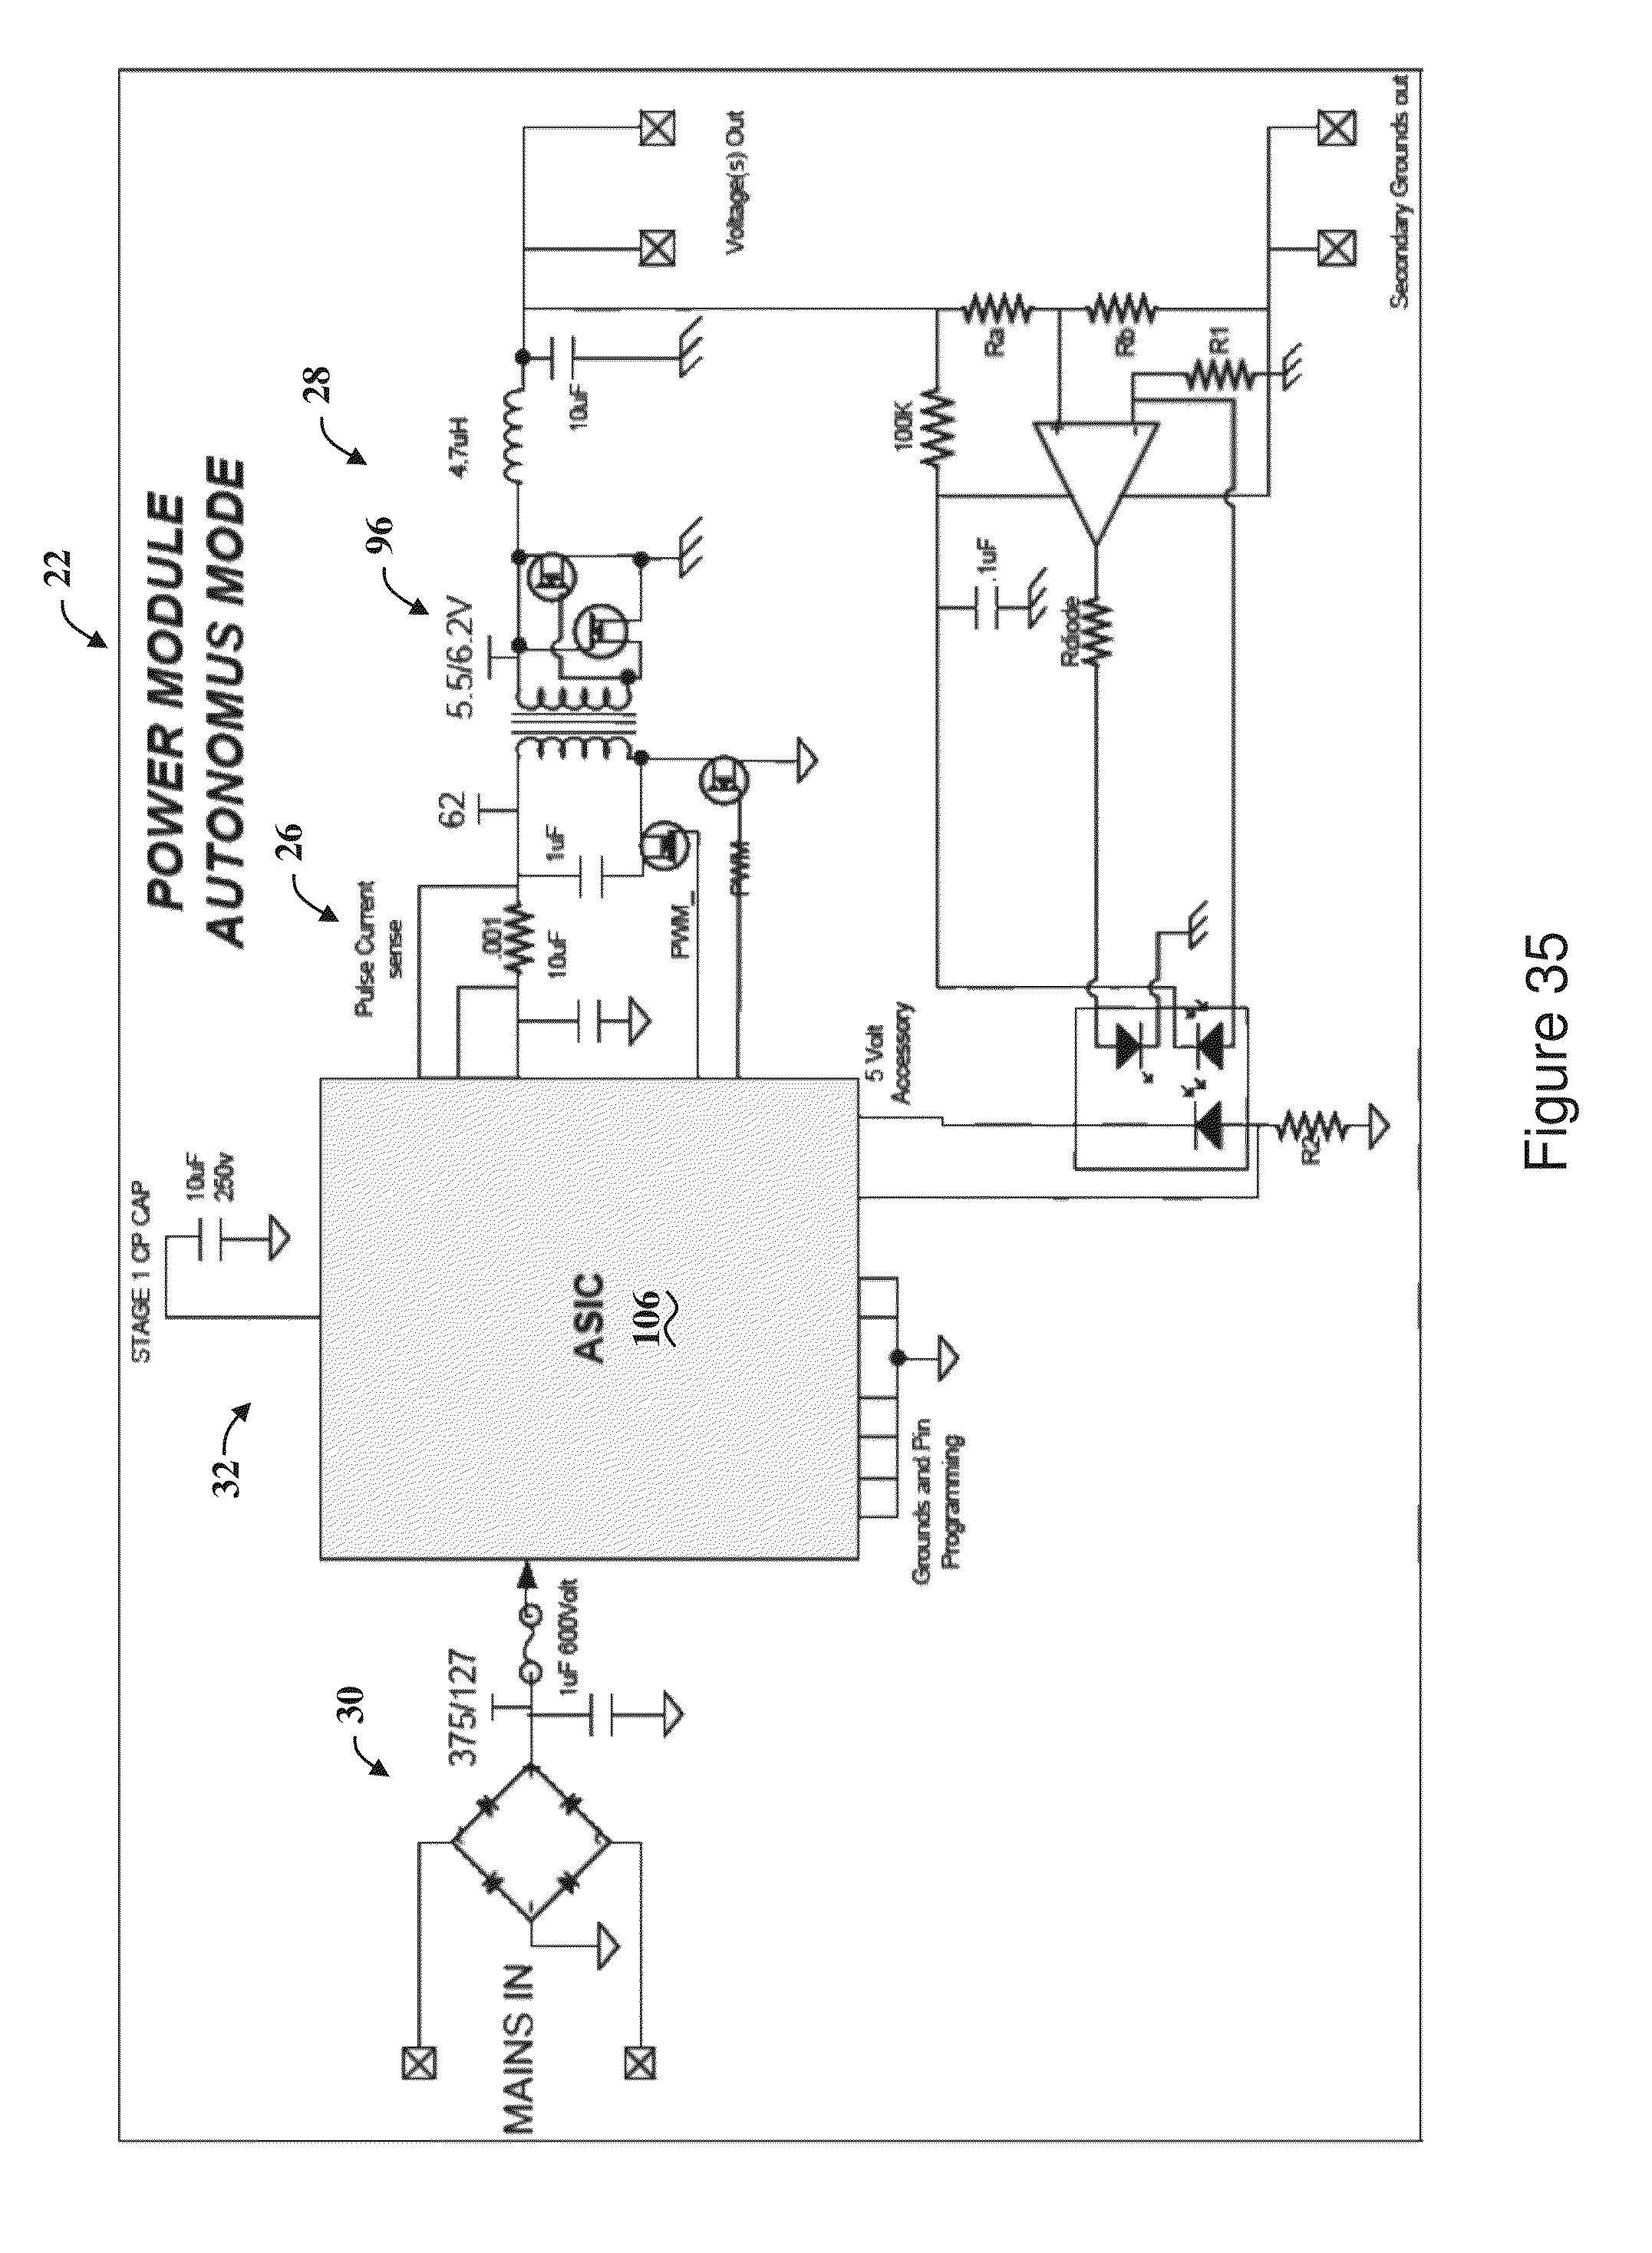 Voltage Inverting Opamp Circuit Electrical Engineering Stack